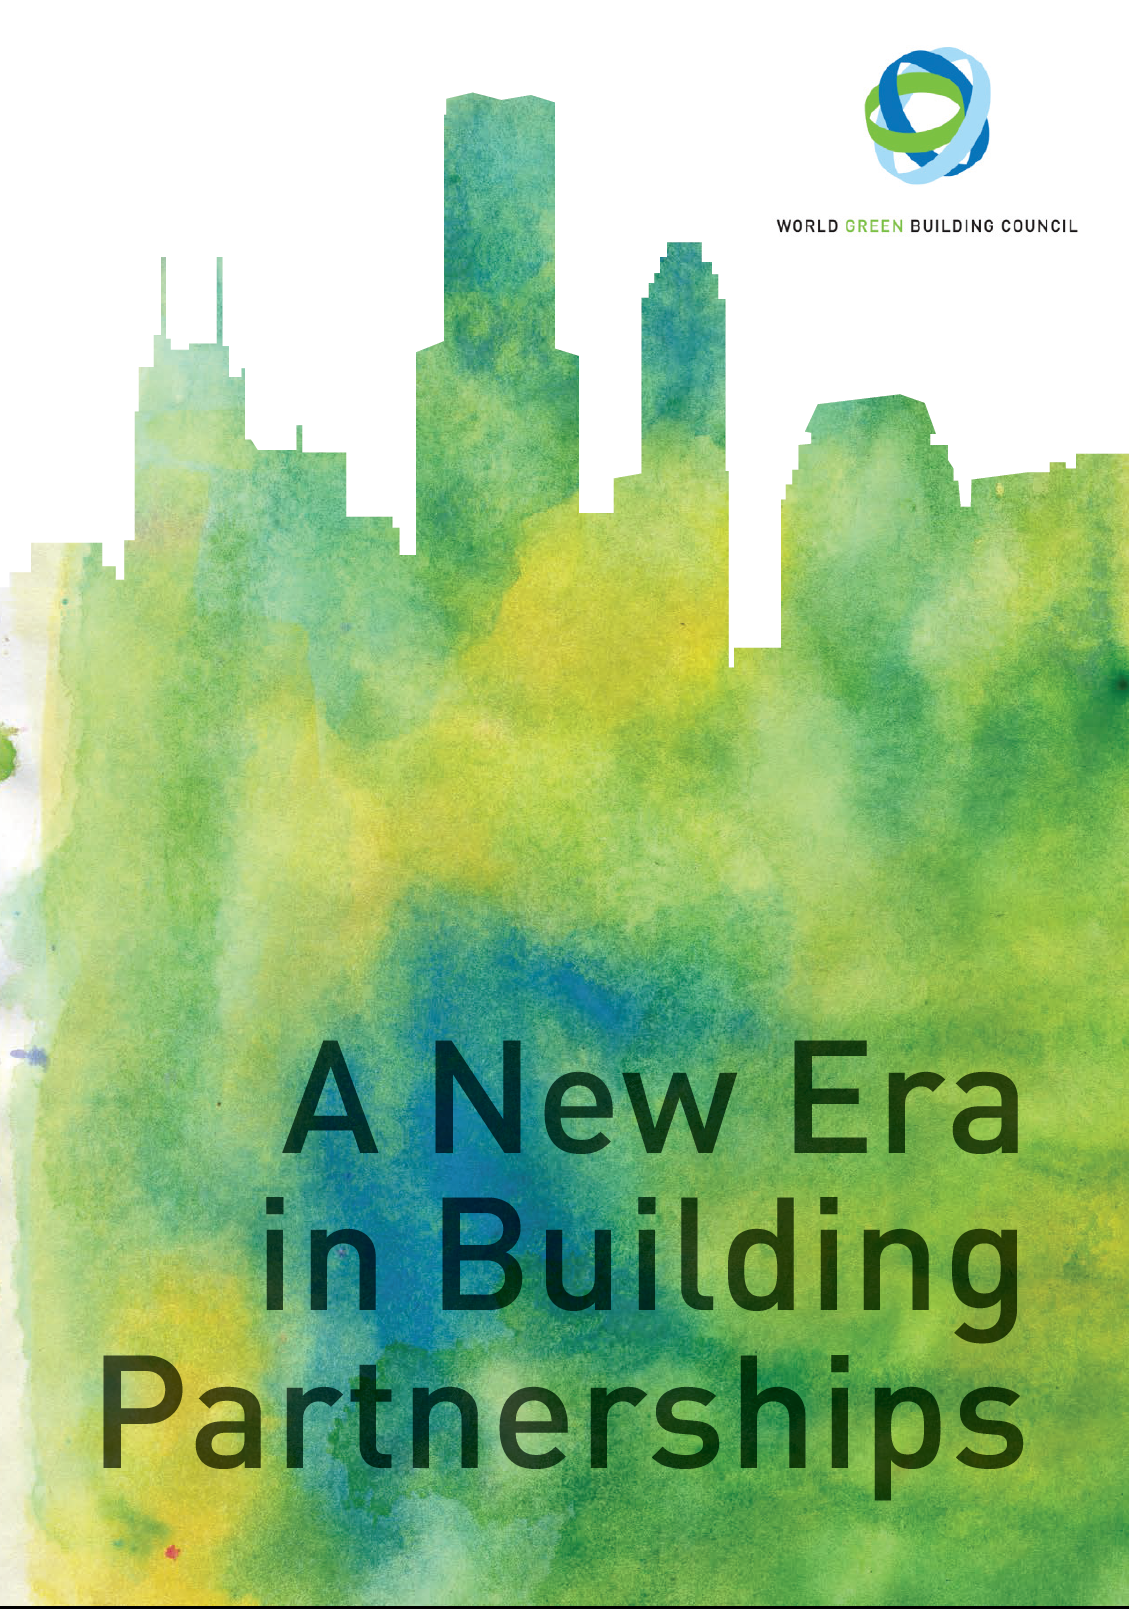 A New Era in Building Green World Green Building Council Report